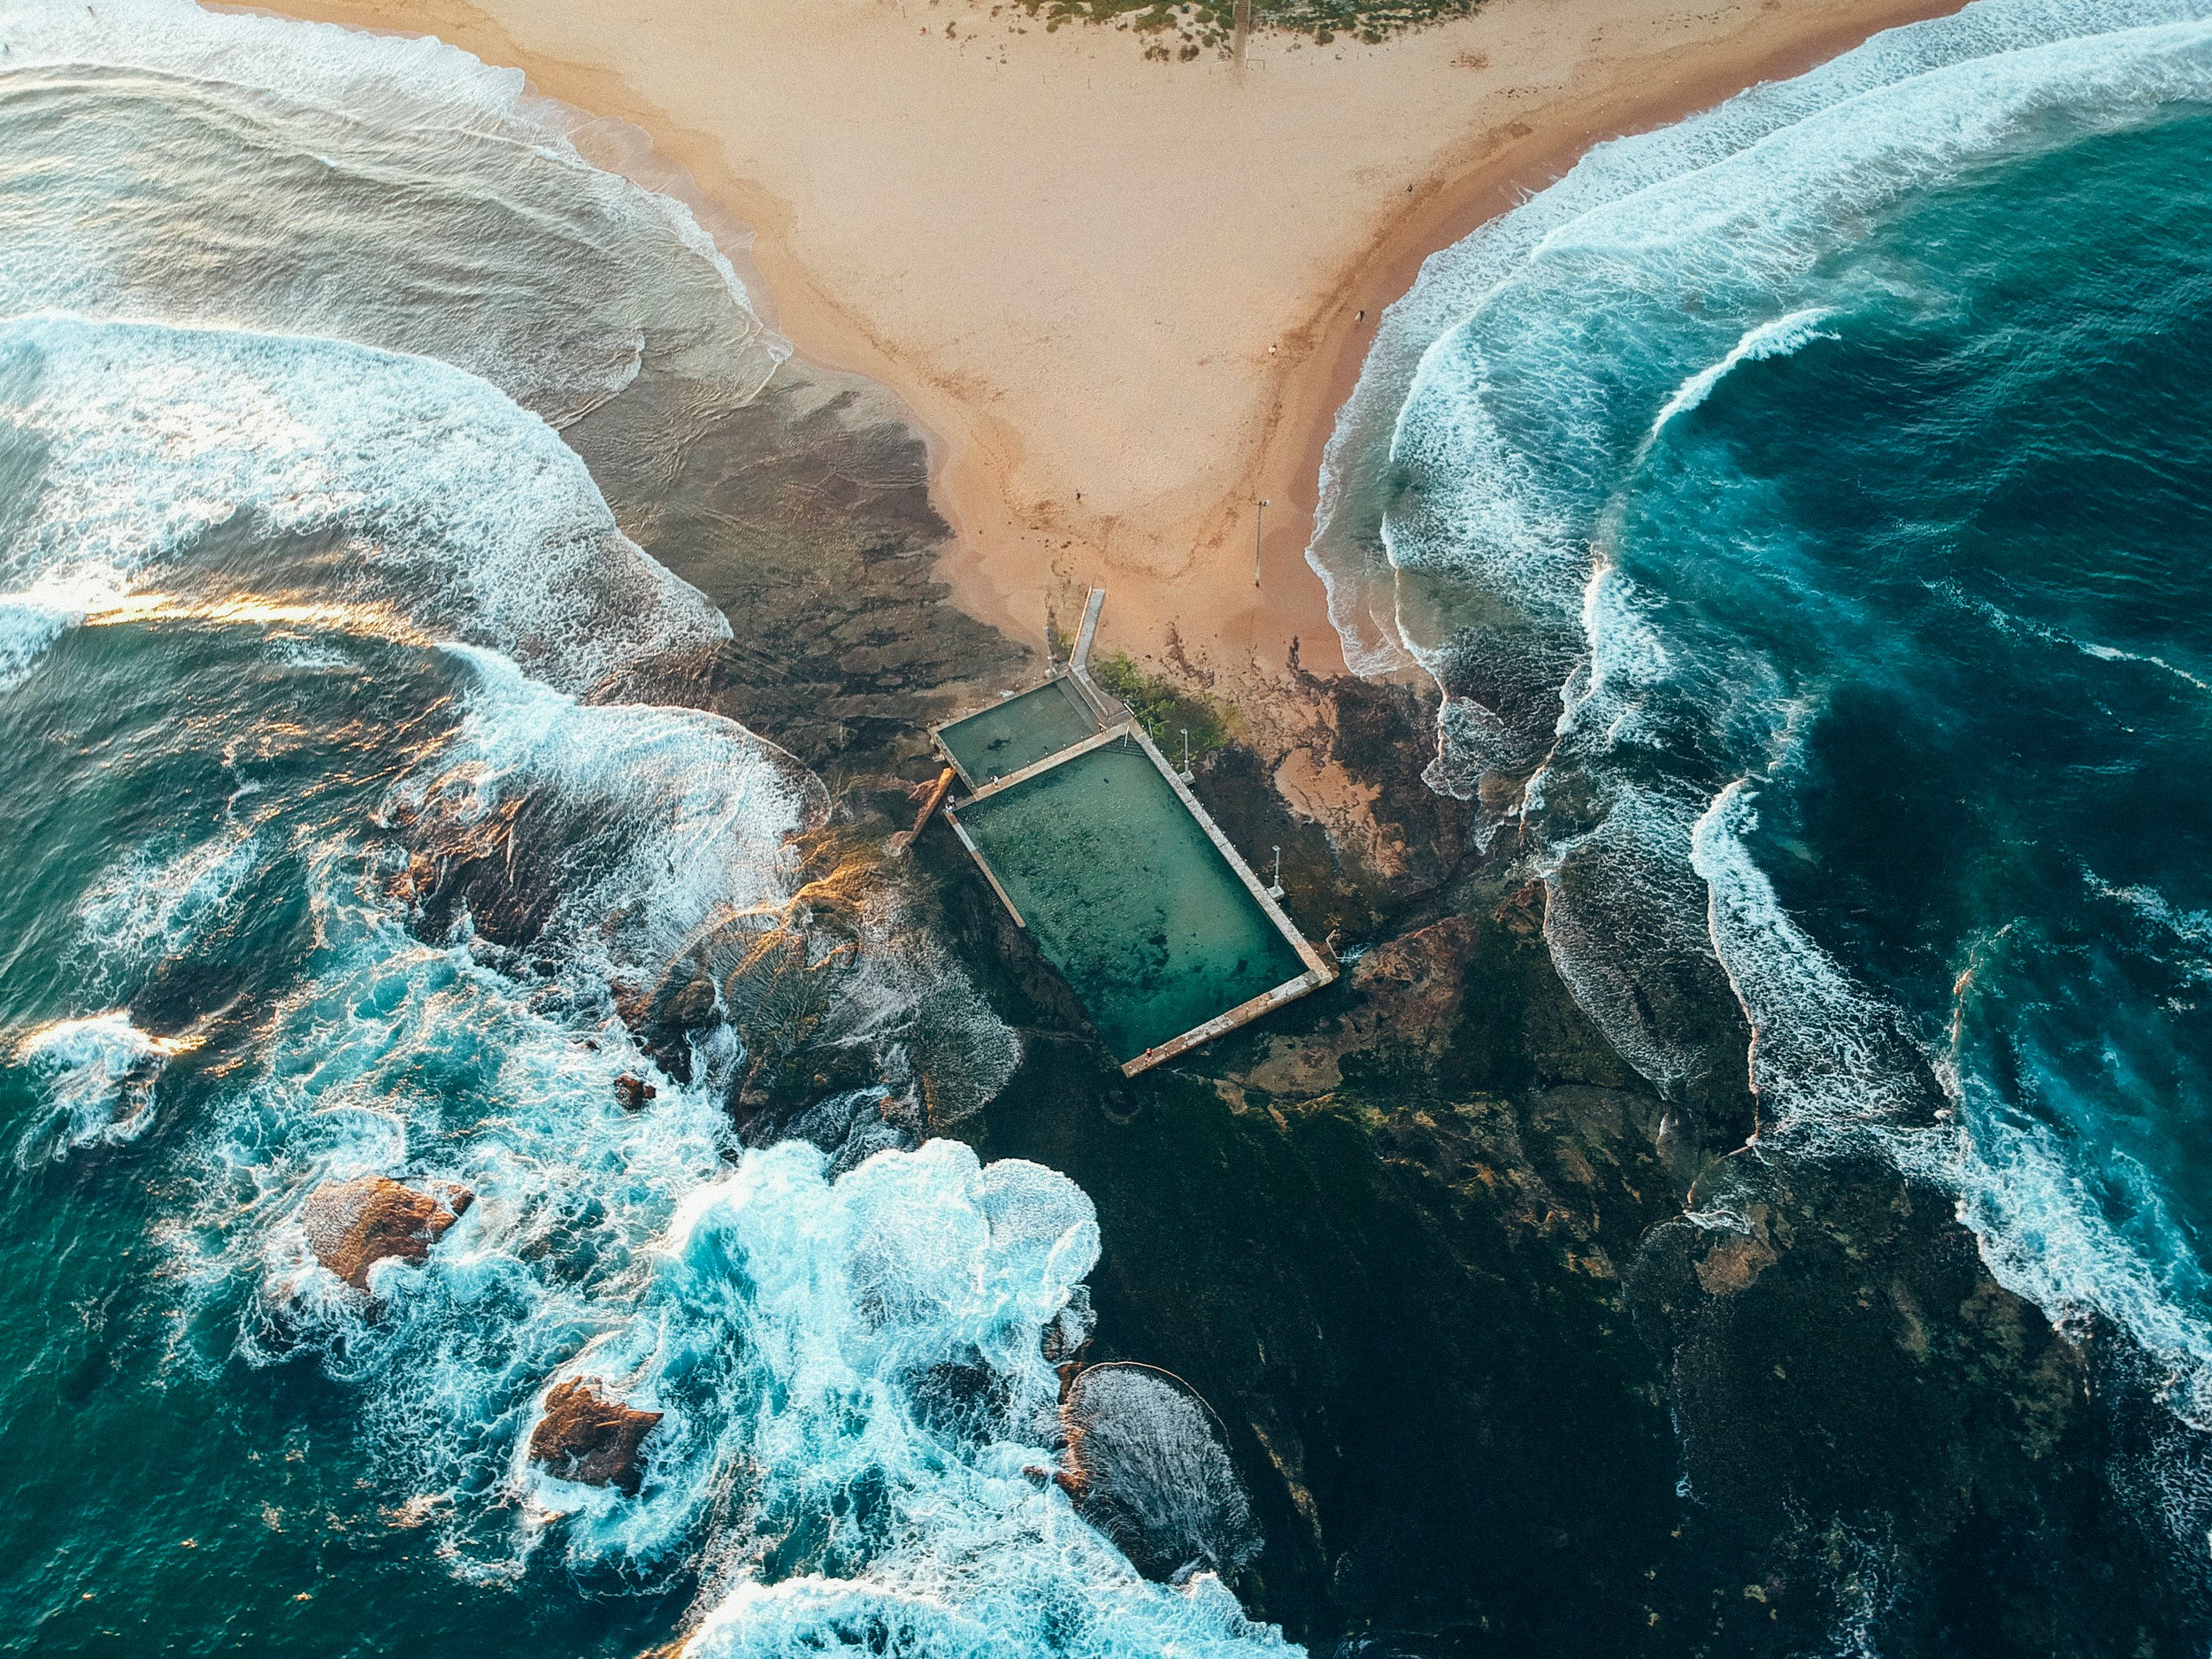 Mona Vale Rock Pool, New South Wales